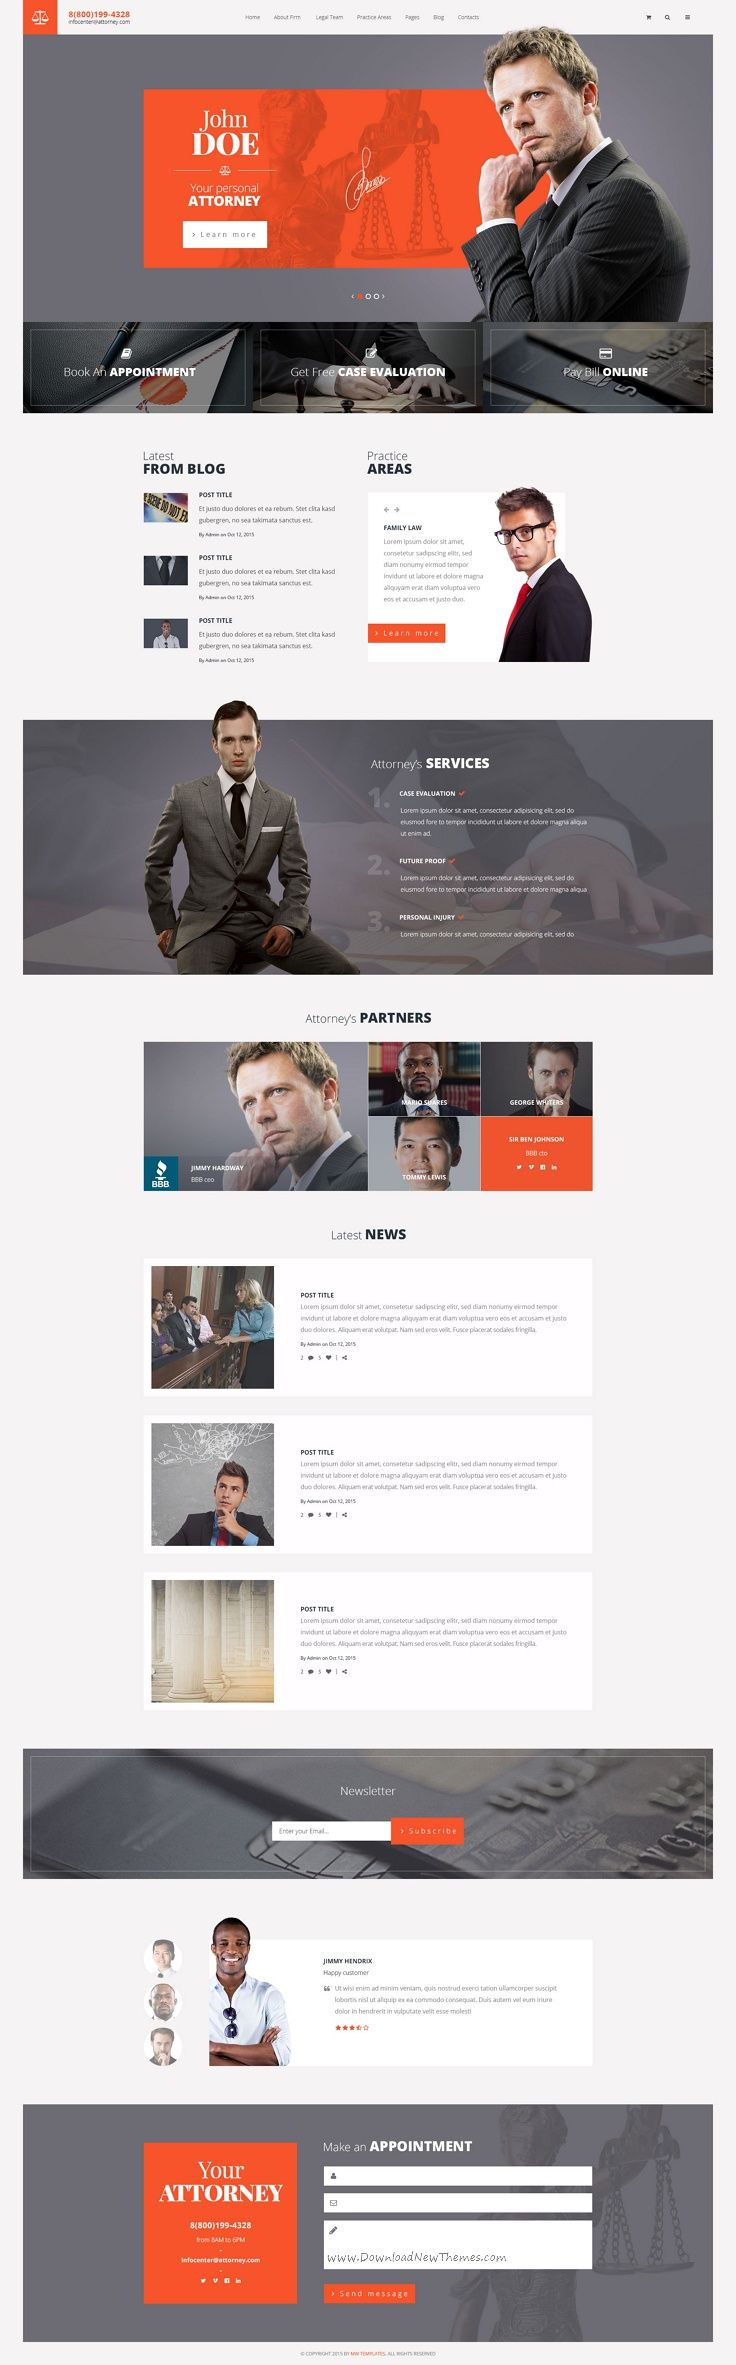 Attorneys Is A Premium PSD Template For Law Firm Personal Law - Law firm templates